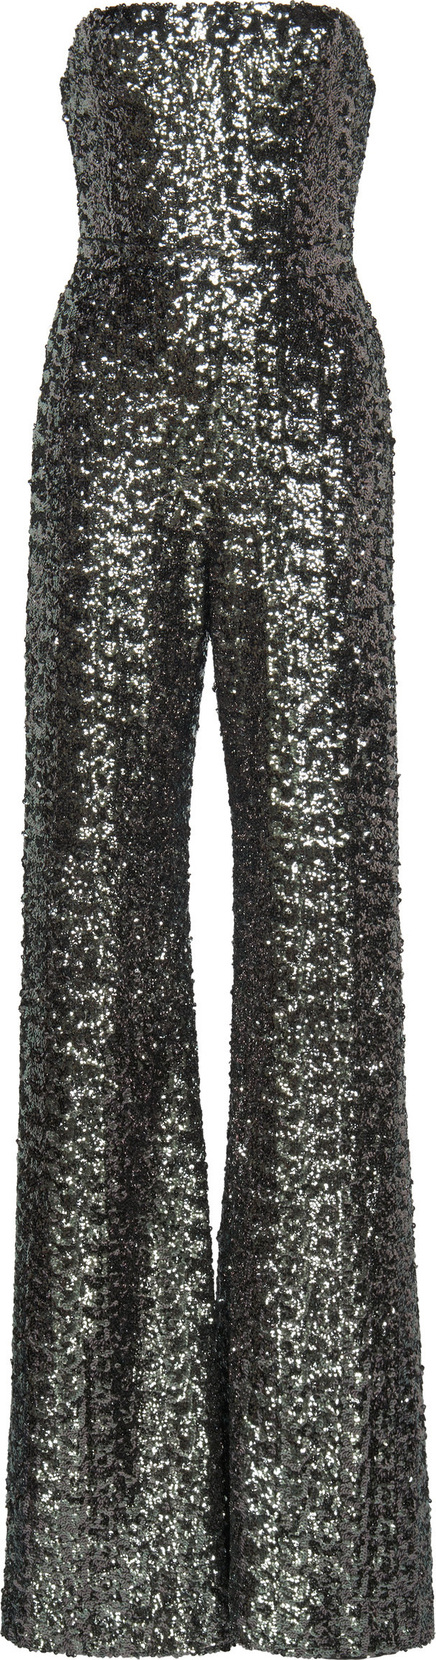 Alexis Carleen Sequined Strapless Jumpsuit